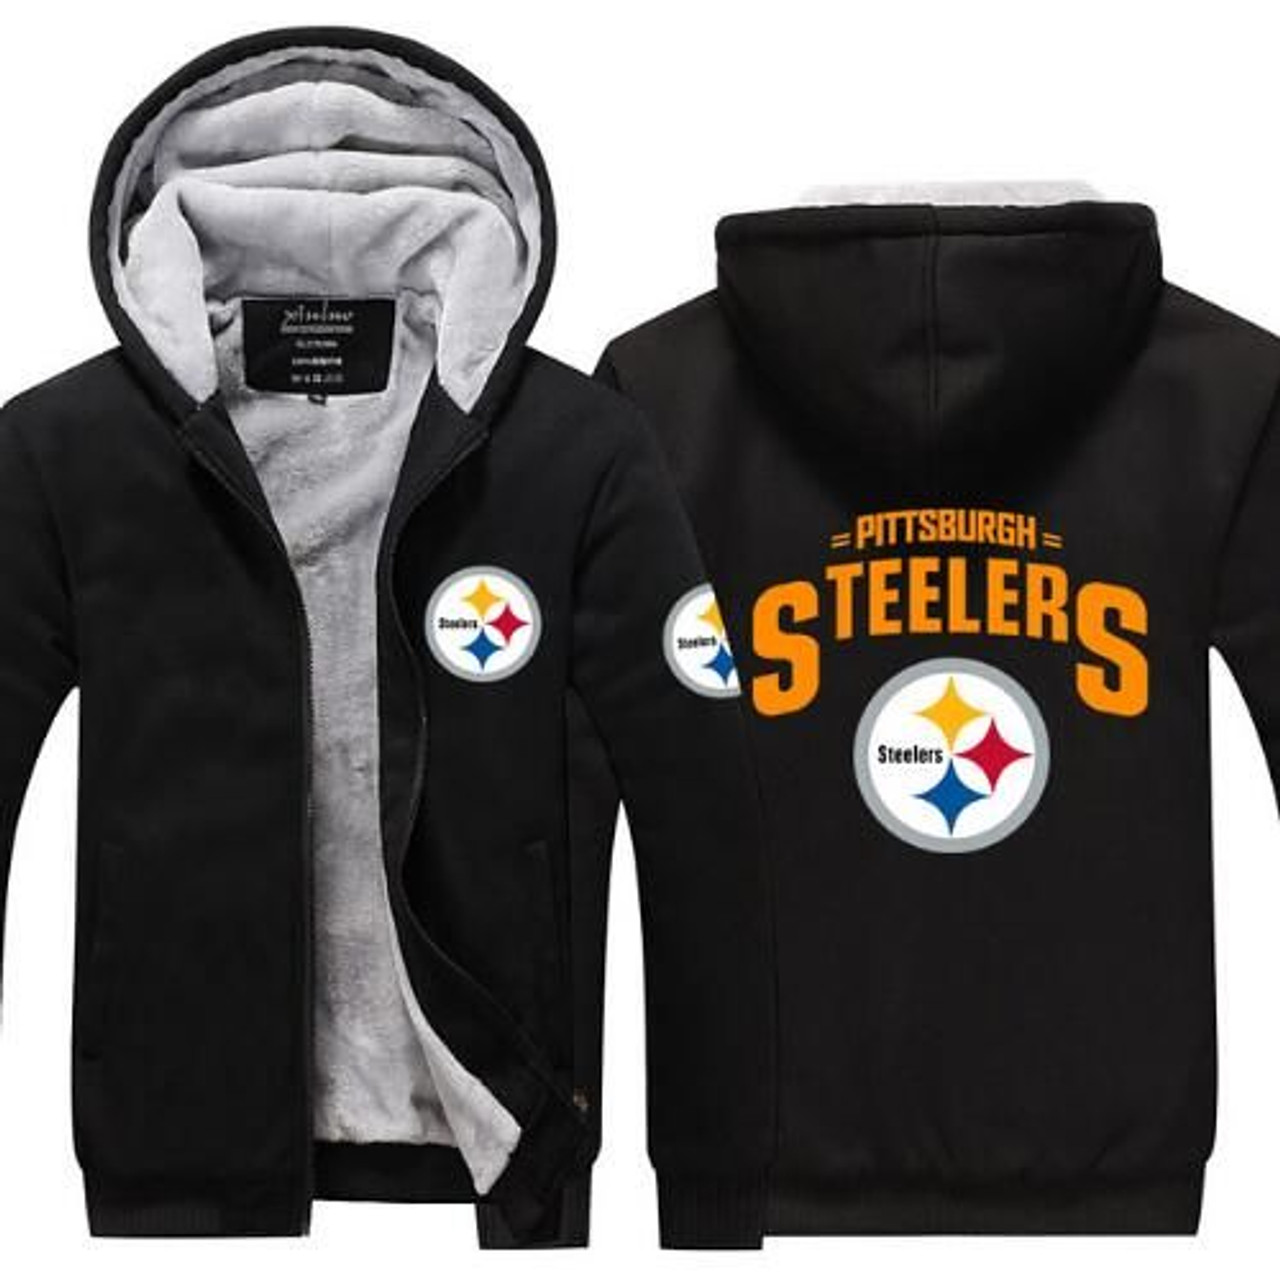 new concept 79bc7 ce2ac **(HOT-NEW-PITTSBURGH-STEELERS/NEW-OFFICIALLY-LICENSED-N.F.L.  PITTSBURGH-STEELERS/NEW-TWO-TONE-STYLE,FLEECE-LINED-TEAM-JACKETS/3-D-CUSTOM-DETAILED-GRA...